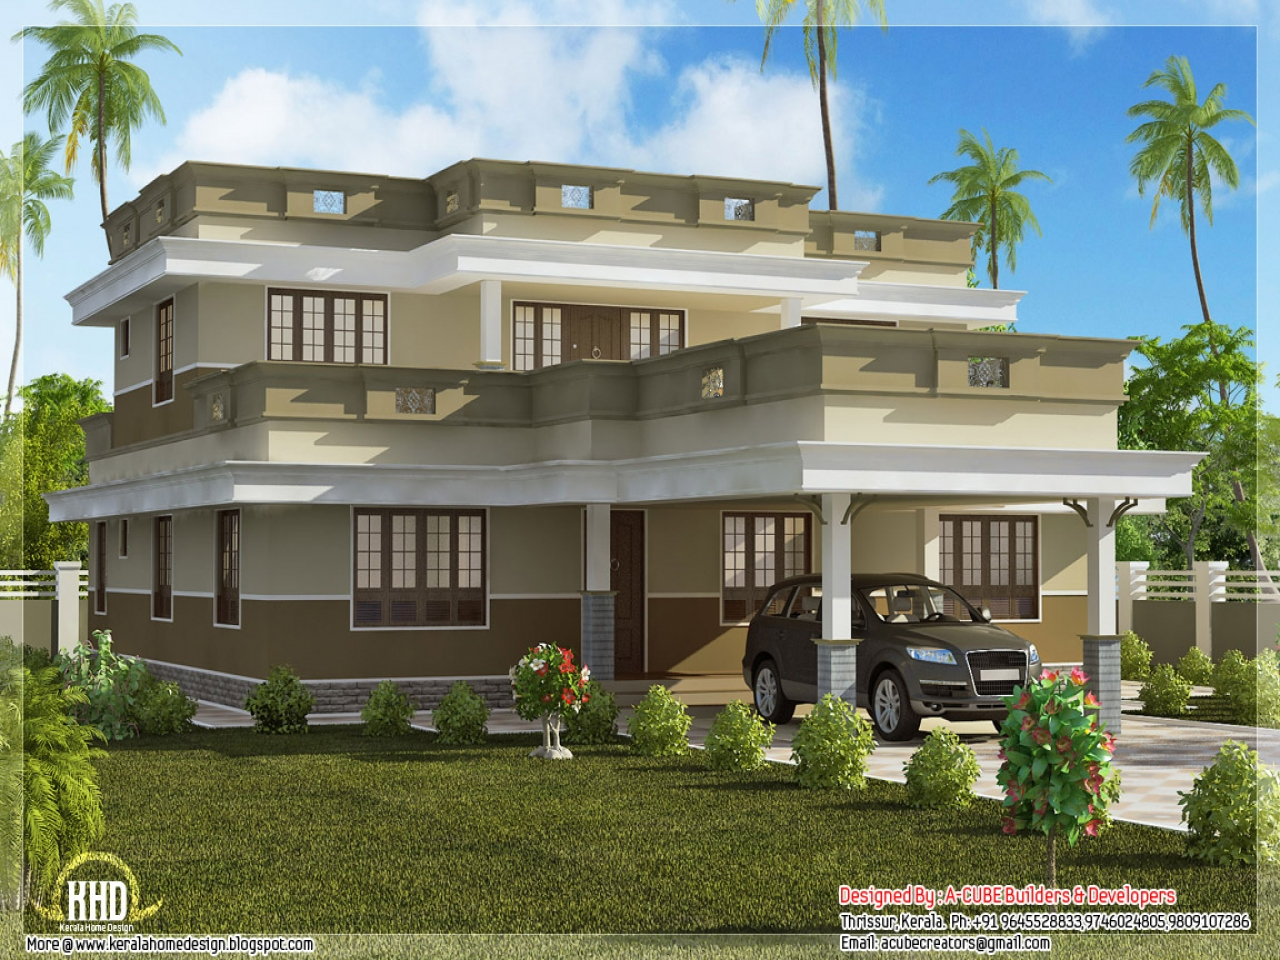 Simple House Plans Flat Roof Flat Roof House Plans Designs